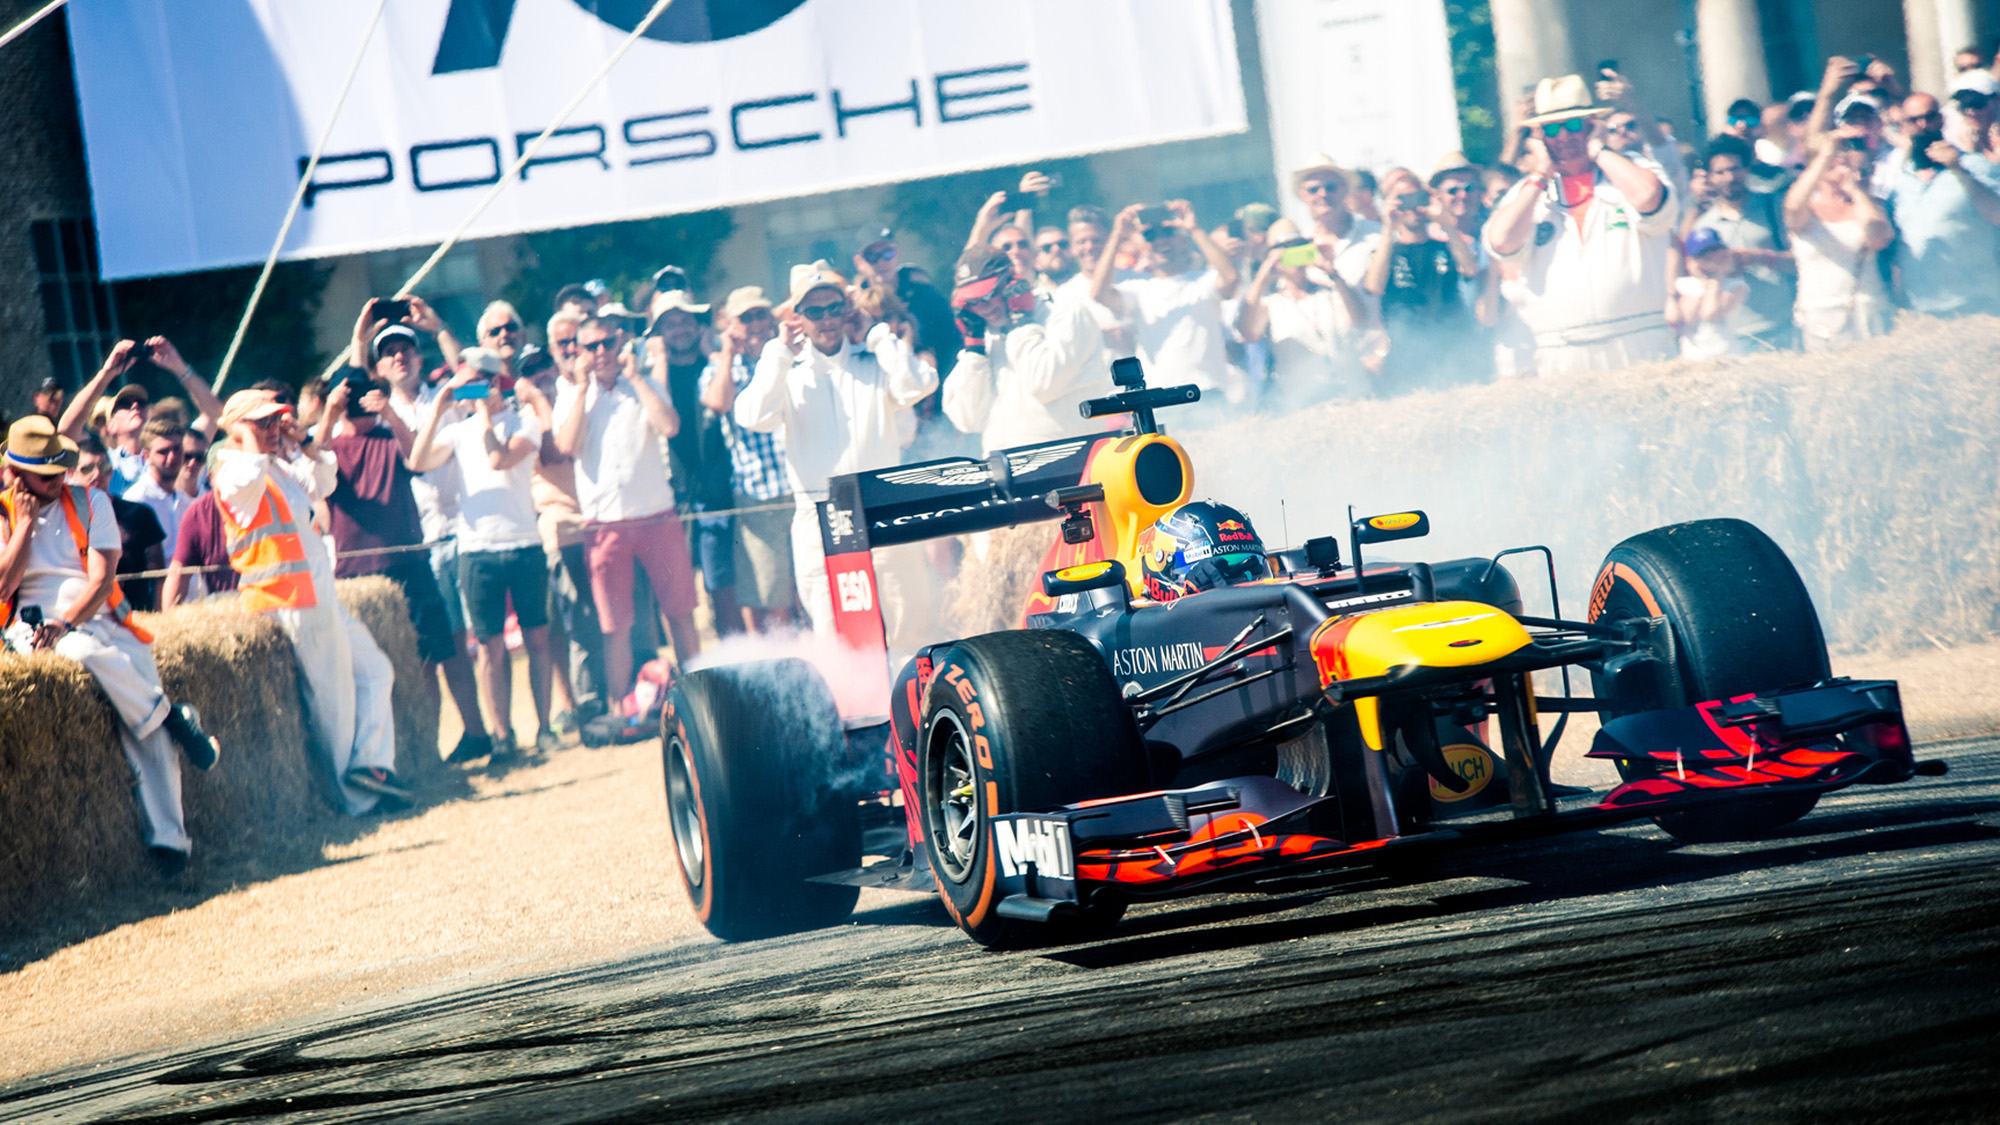 Red Bull at Goodwood Festival of Speed